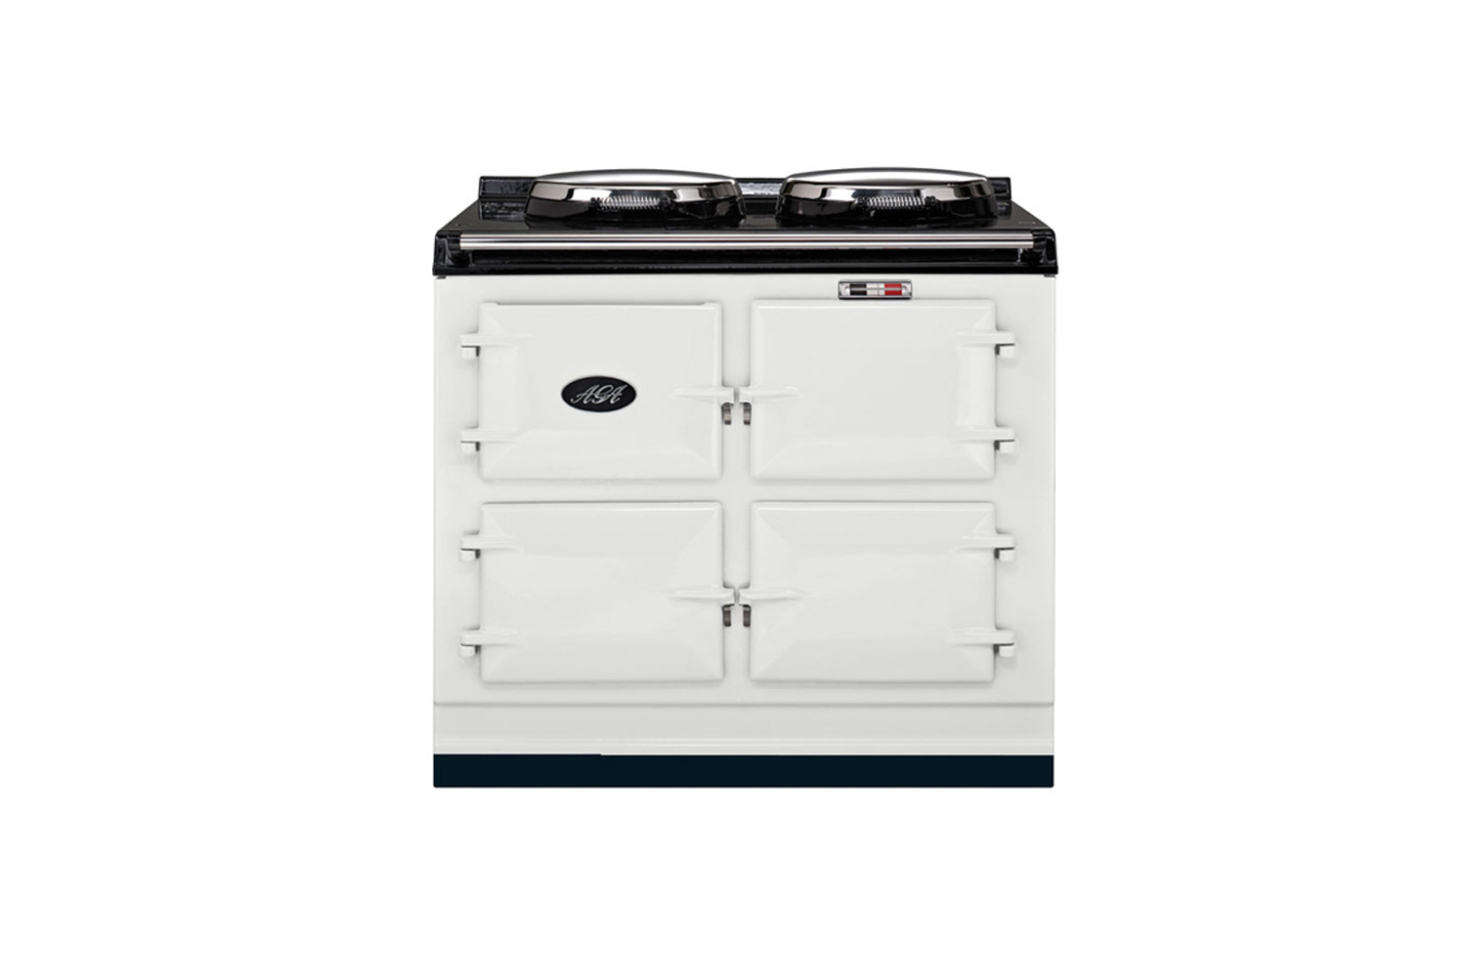 The Aga Cooker has been the gold standard in Britain since 1929. Shown here is the Aga Traditional Cast Iron Range Cooker with three ovens starting at £11,020 from Aga Living. For more on Aga ranges, see our postsDesign Sleuth: Classic Aga Cookers andObject Lessons: The Great British Range Cooker.